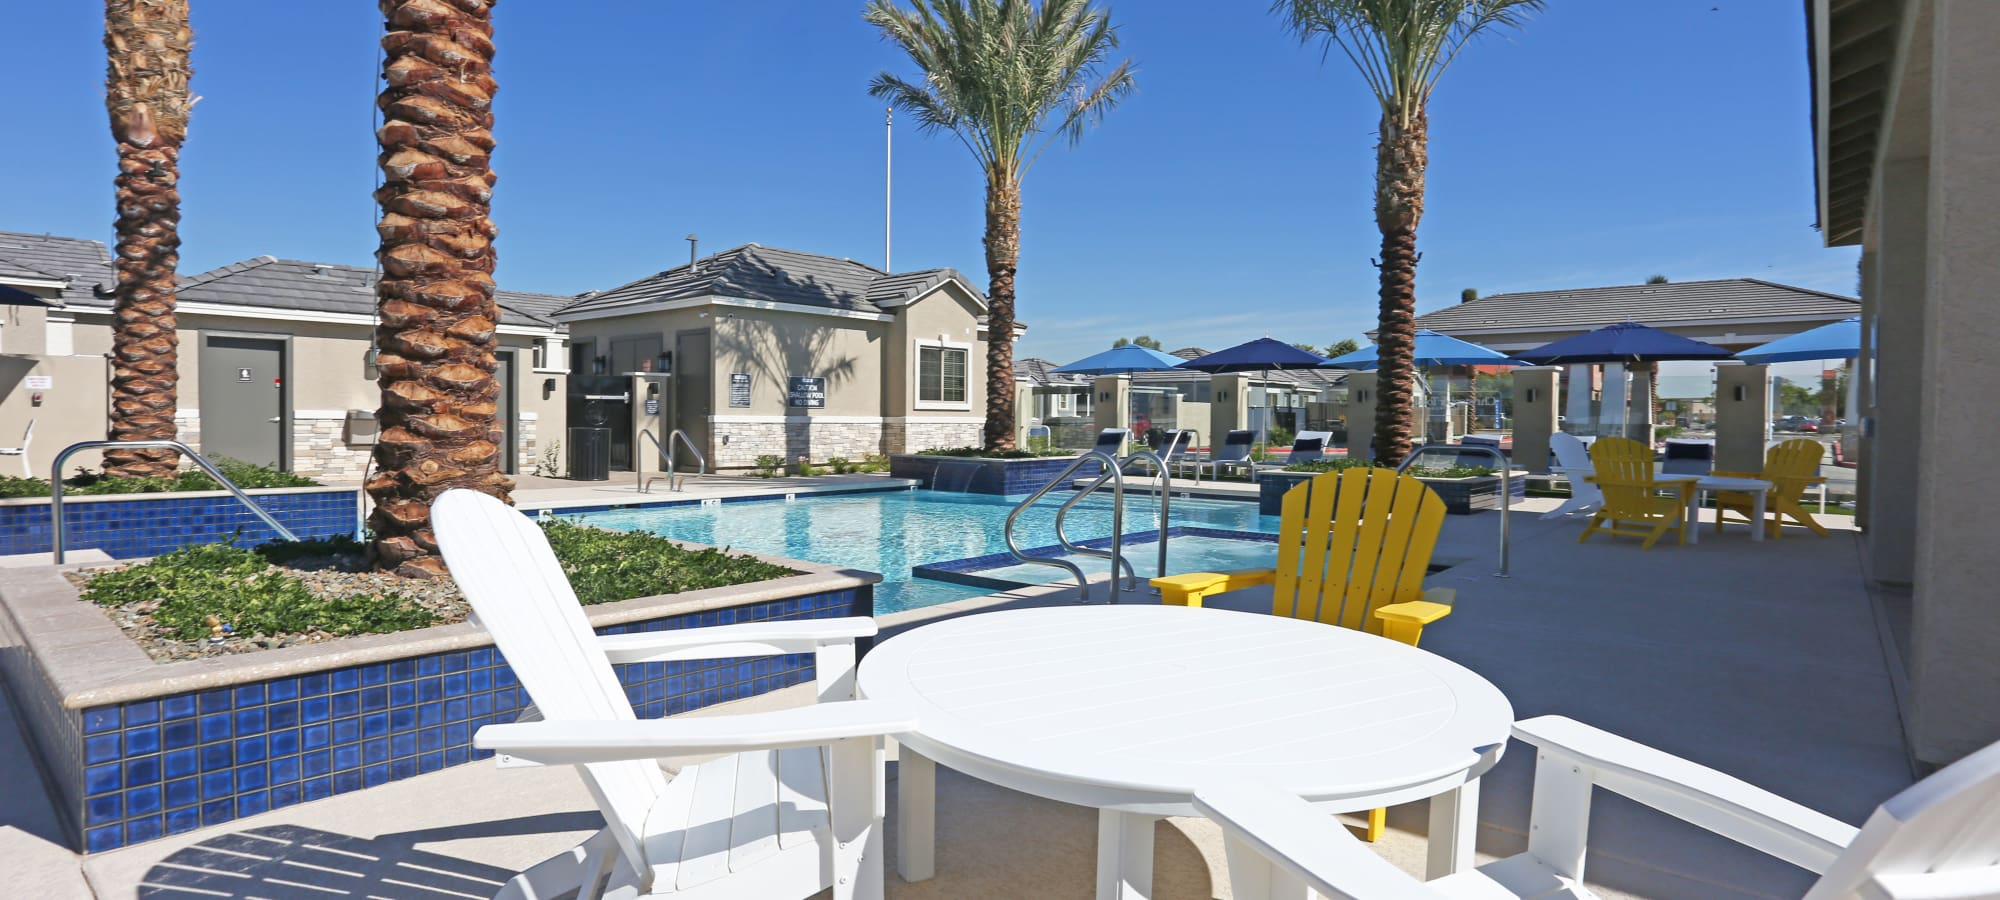 Comfortable seating near the pool at Christopher Todd Communities On Camelback in Litchfield Park, Arizona